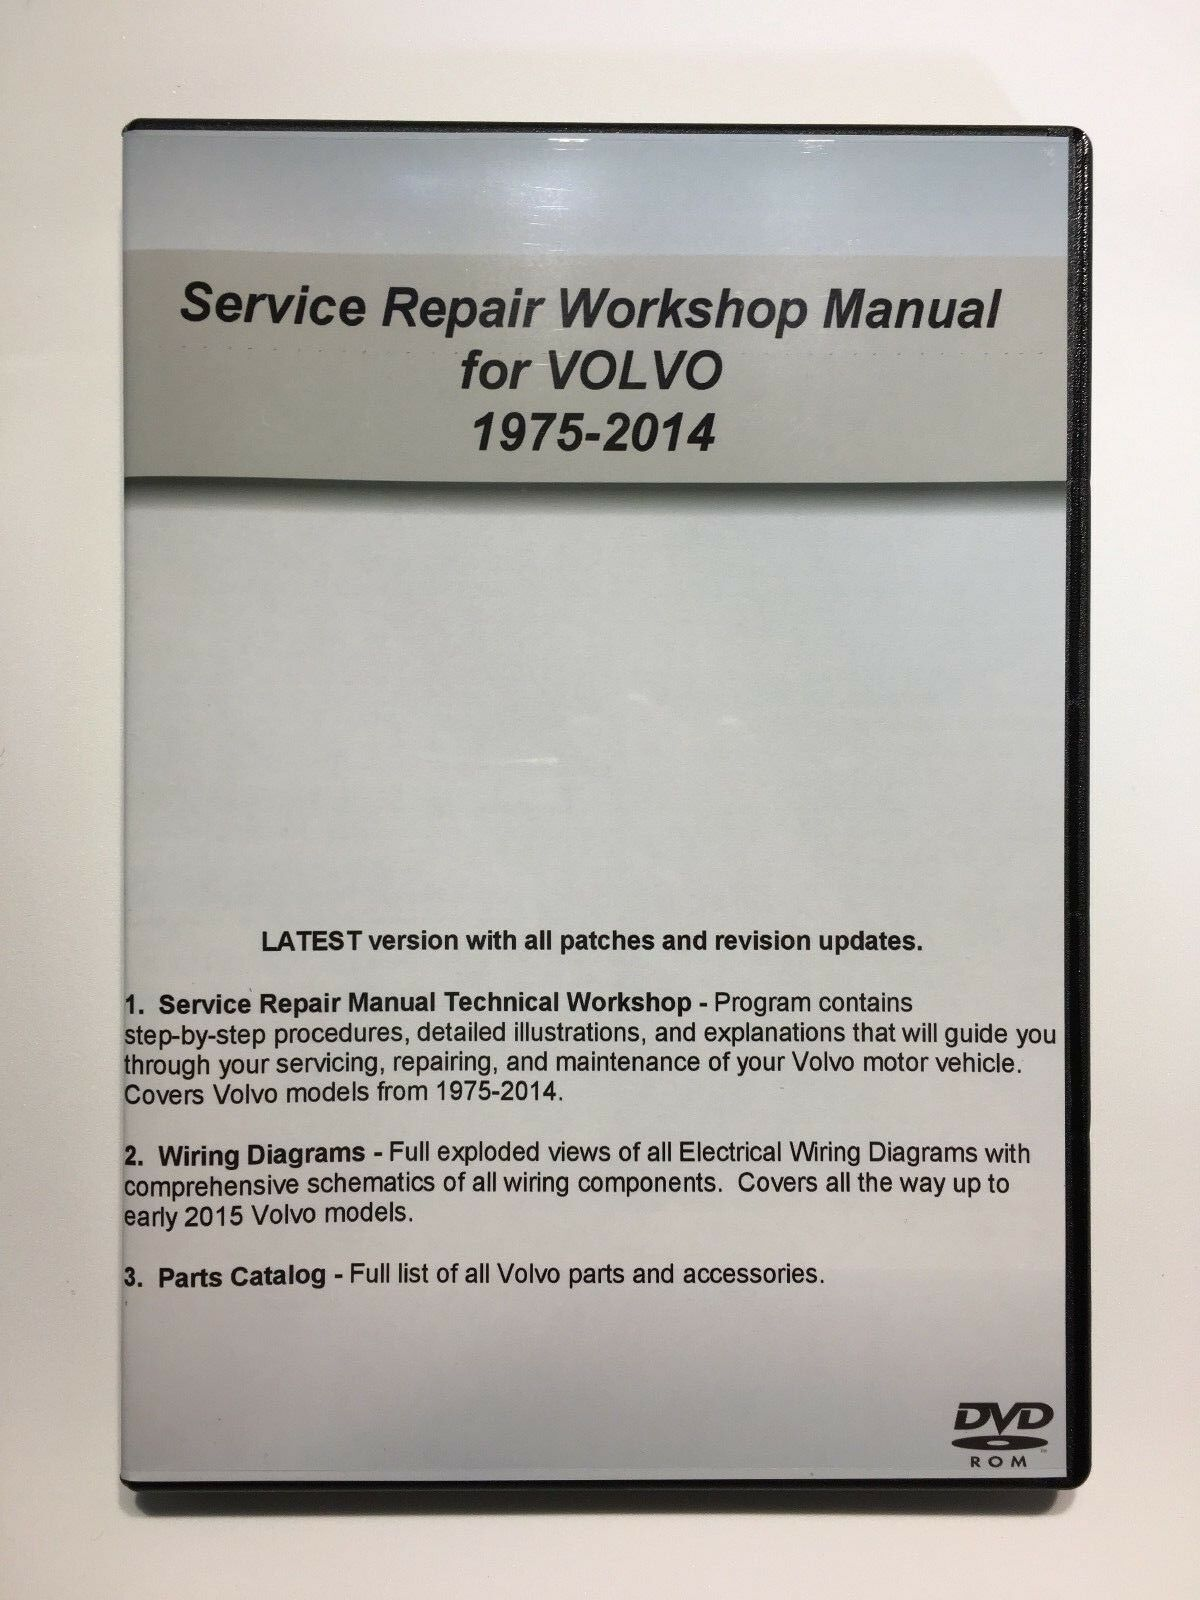 For Volvo 2001 2014 Xc70 V70 Service Repair Workshop Manual Factory Tips 1996 850 Wiring Diagrams 1 Of 1only 3 Available